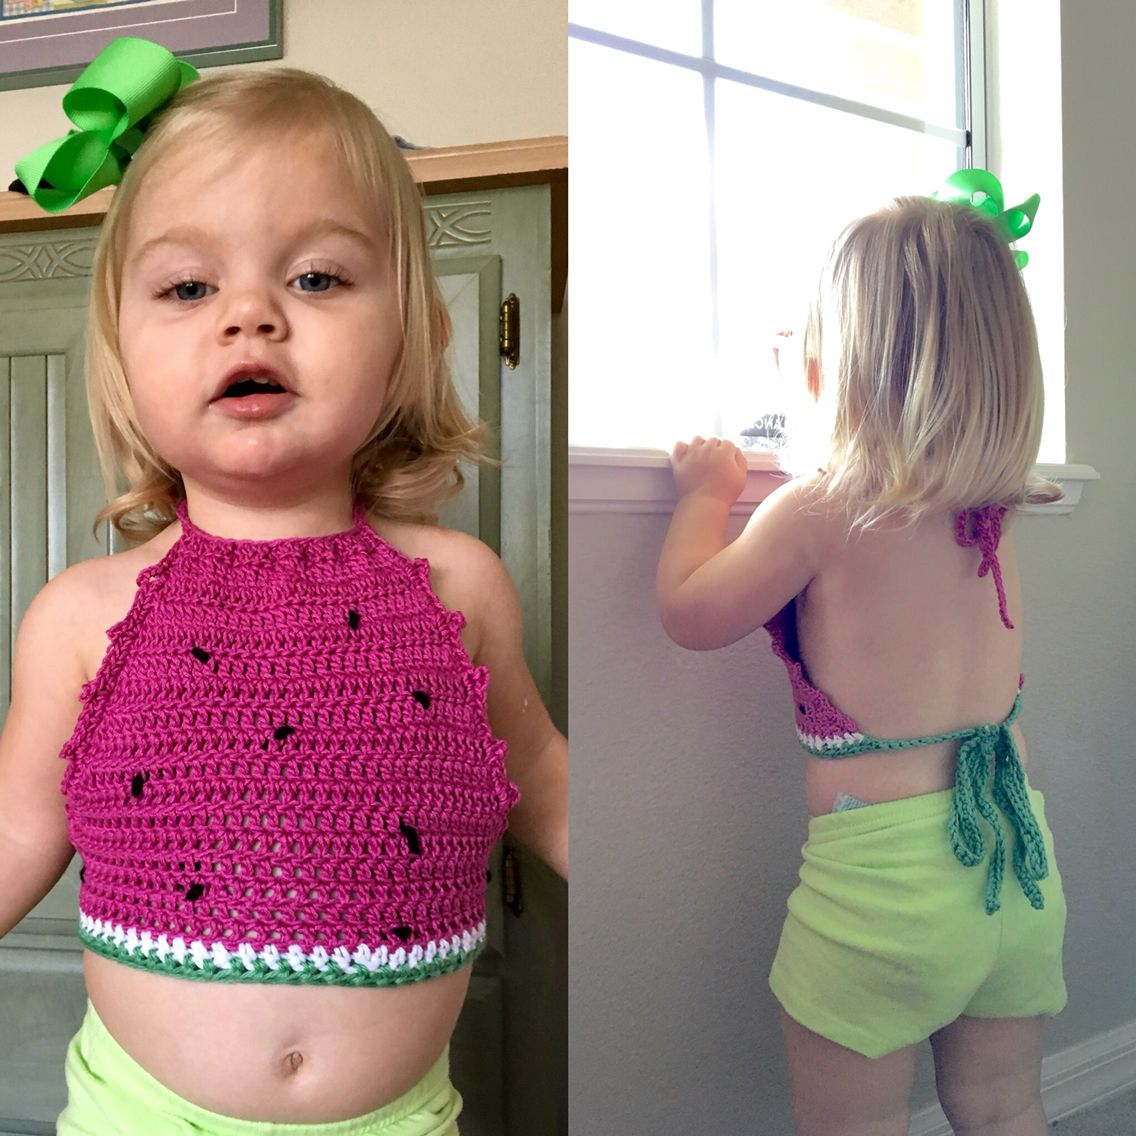 bee979143bc Cotton Watermelon Crop Top for the Littles. Available in sizes 12 months to  24 months